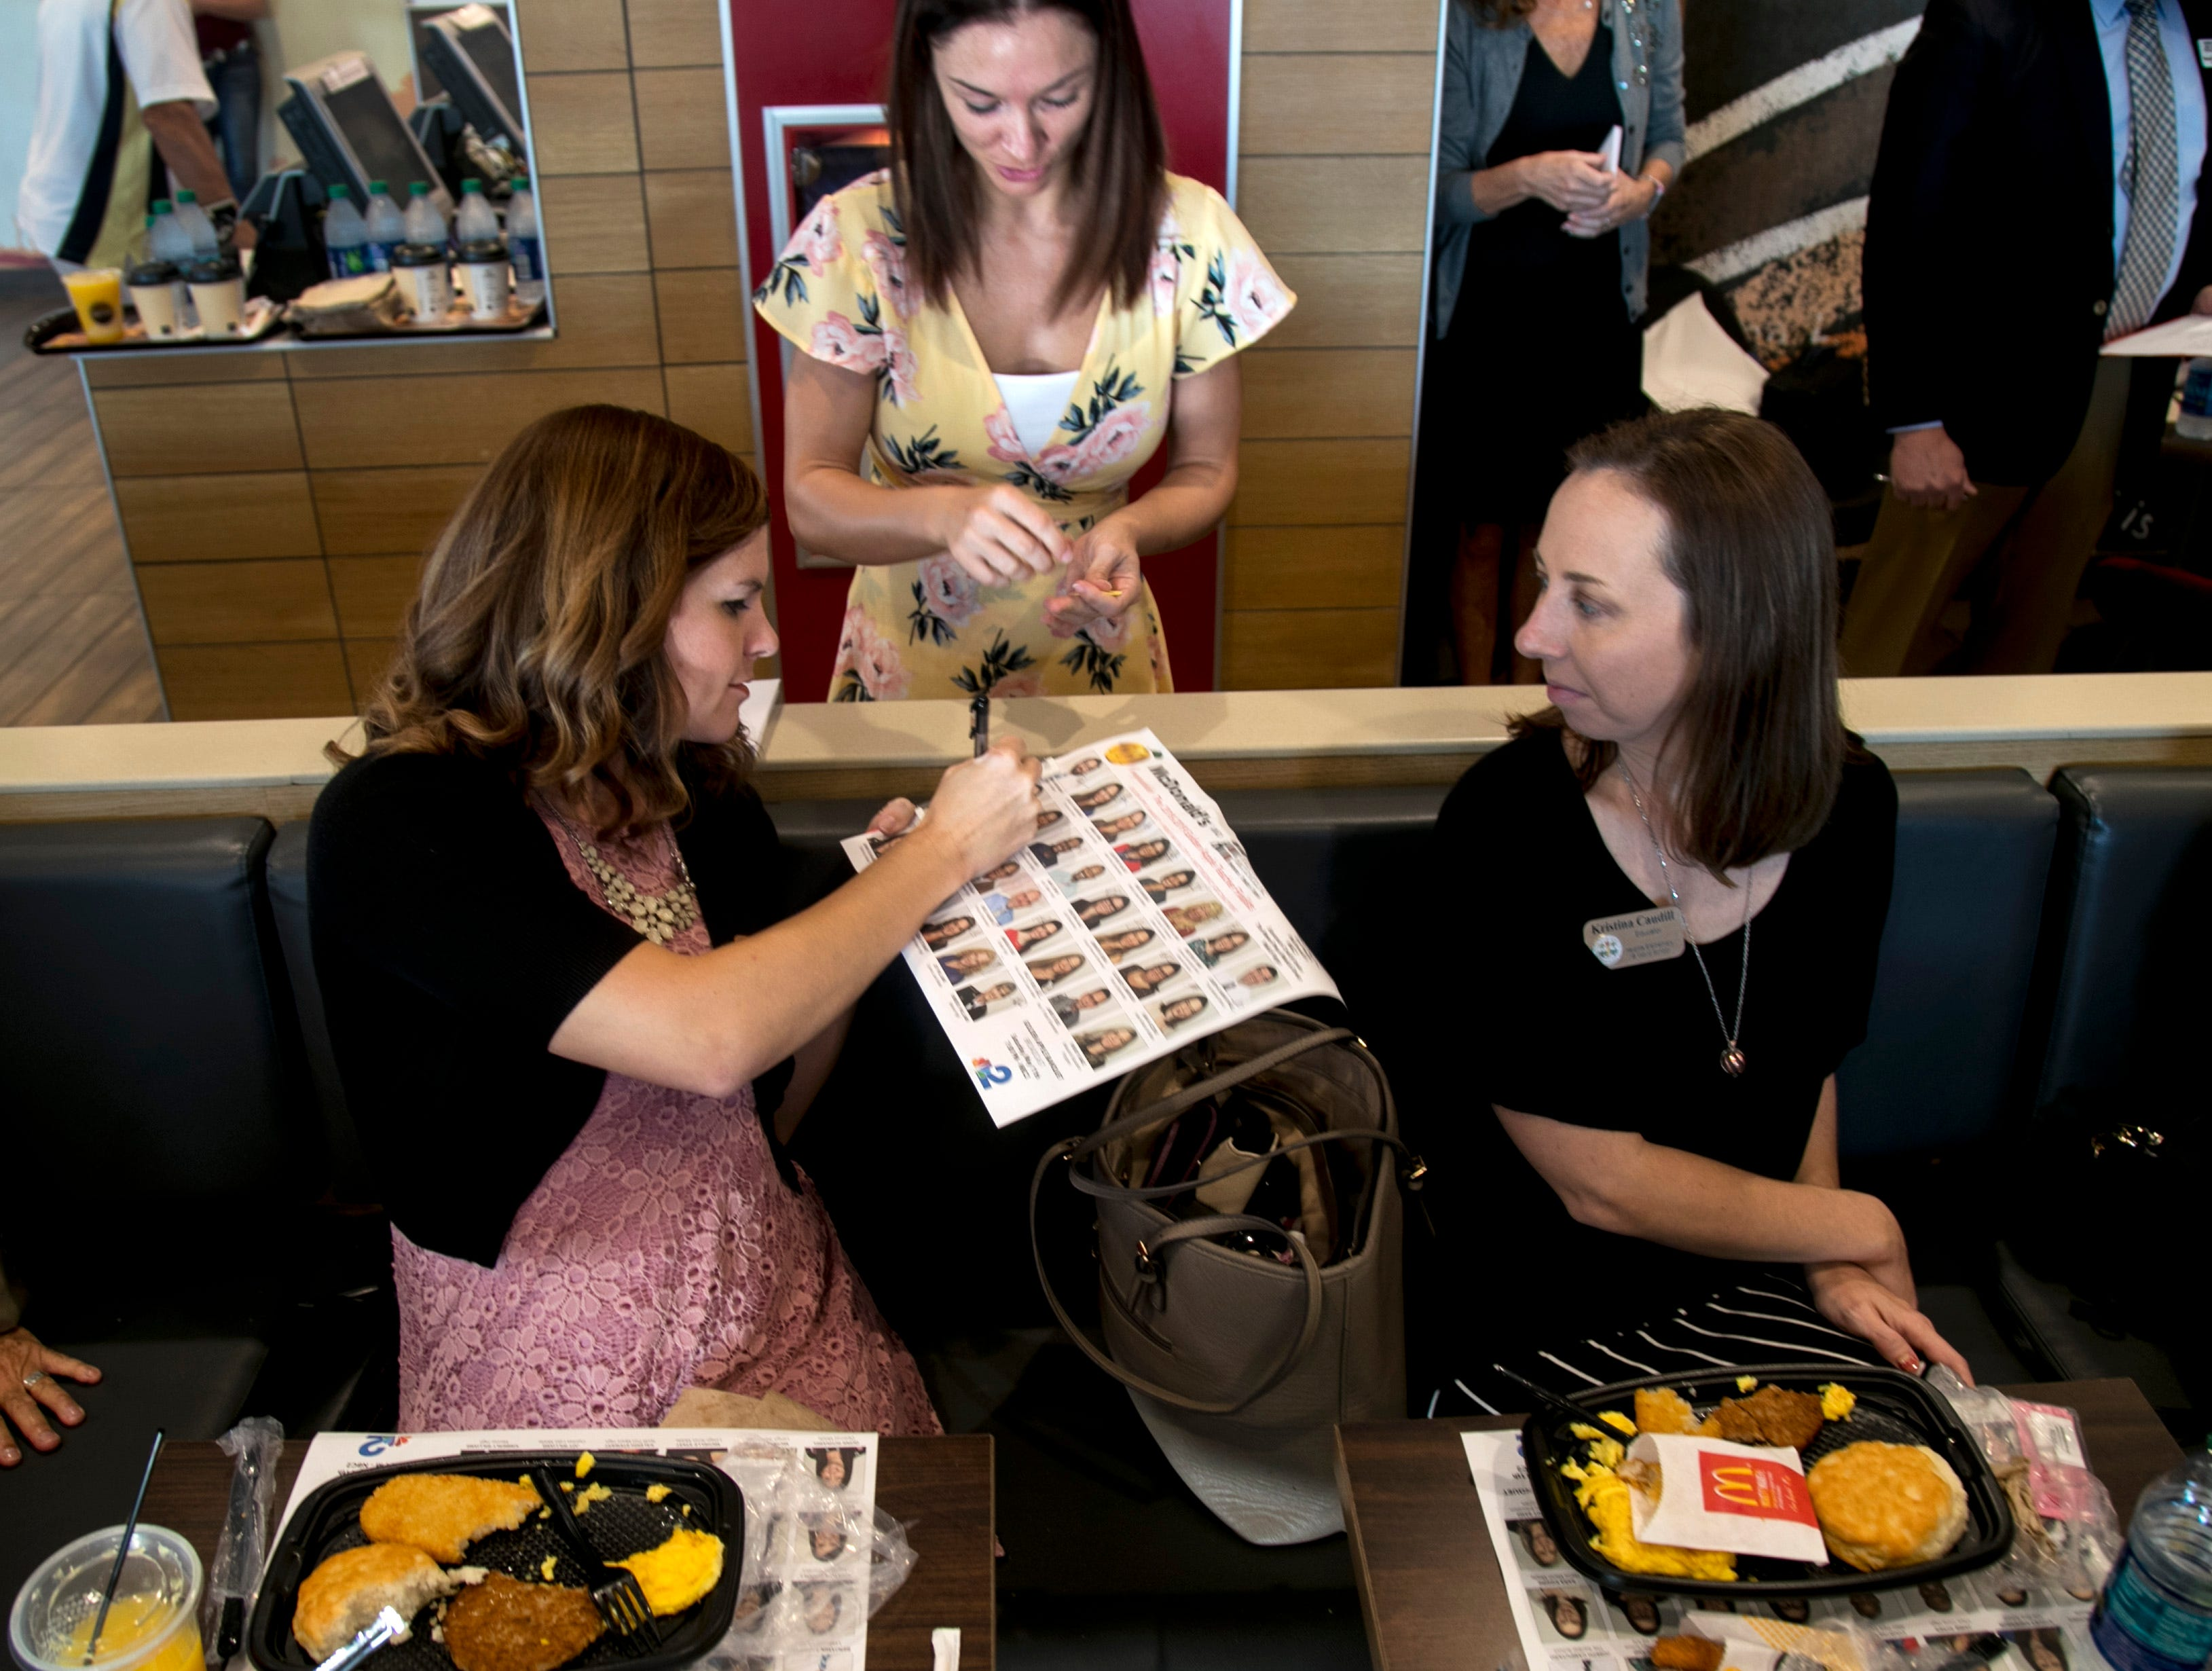 Kelley Lambert, a Golden Apple finalist from Pinewoods Elementary, signs her photo on the tray liner created with the photos of the 30 Golden Apple finalists at McDonald's in Fort Myers on Friday.